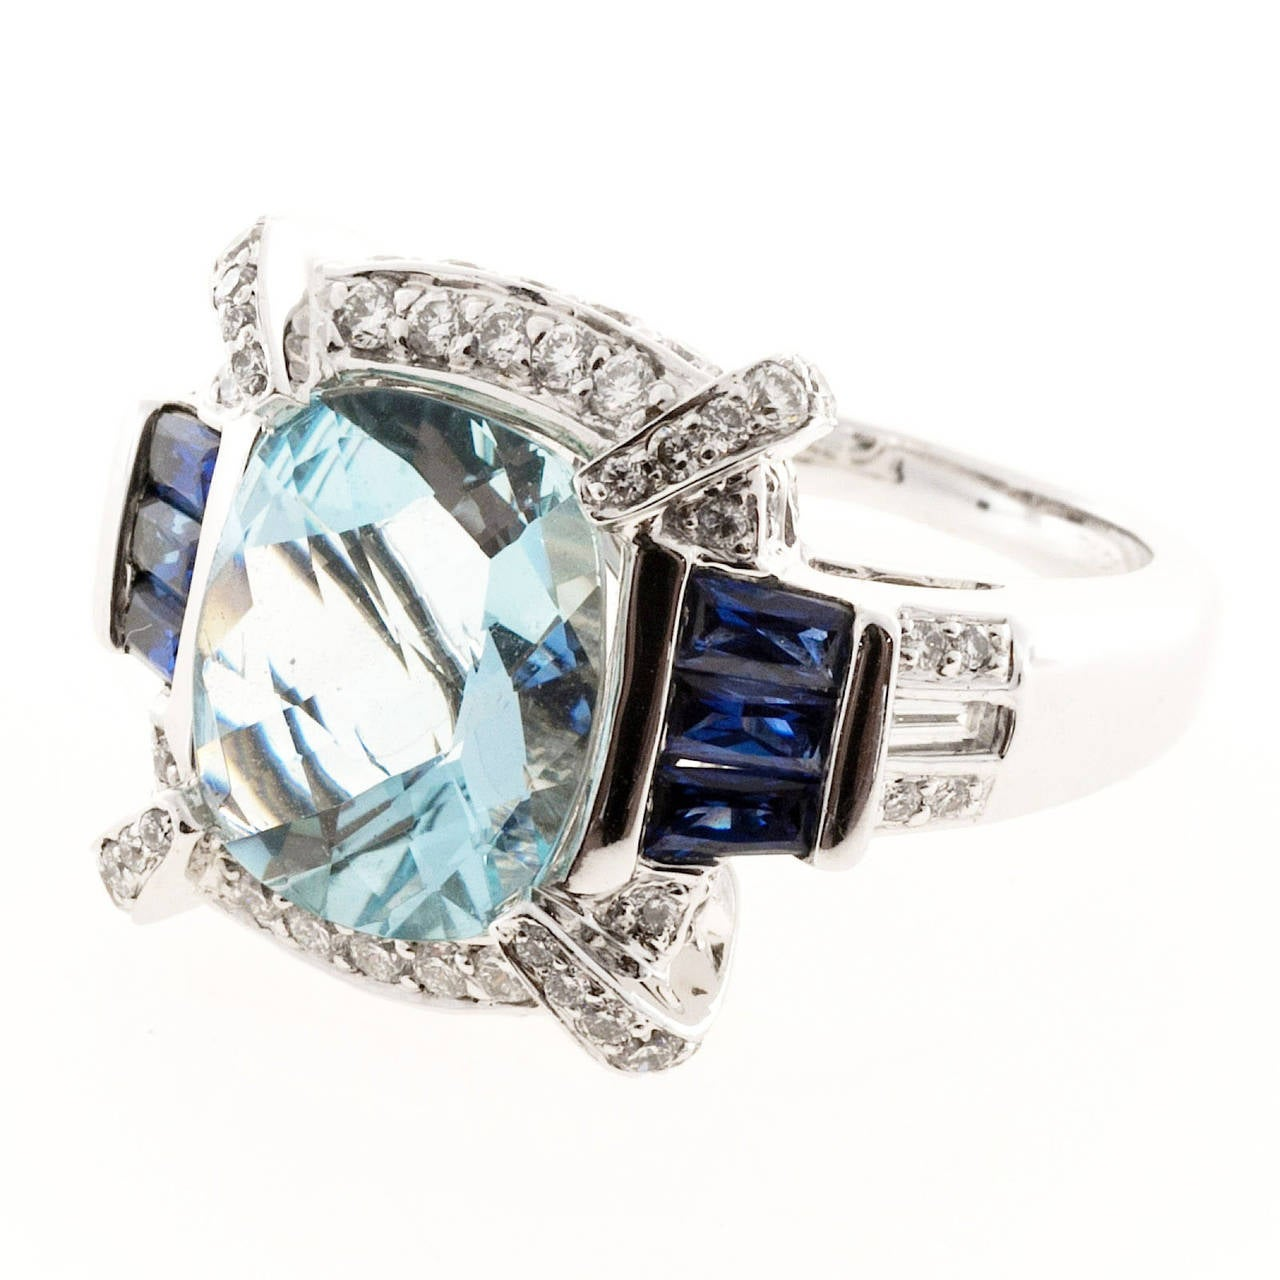 Authentic beautiful Charles Krypell solid 18k white gold ring with a genuine Aqua and fine blue Sapphires and top white full cut diamonds. Charles Krypell is known for bold designs and fine workmanship and stones.